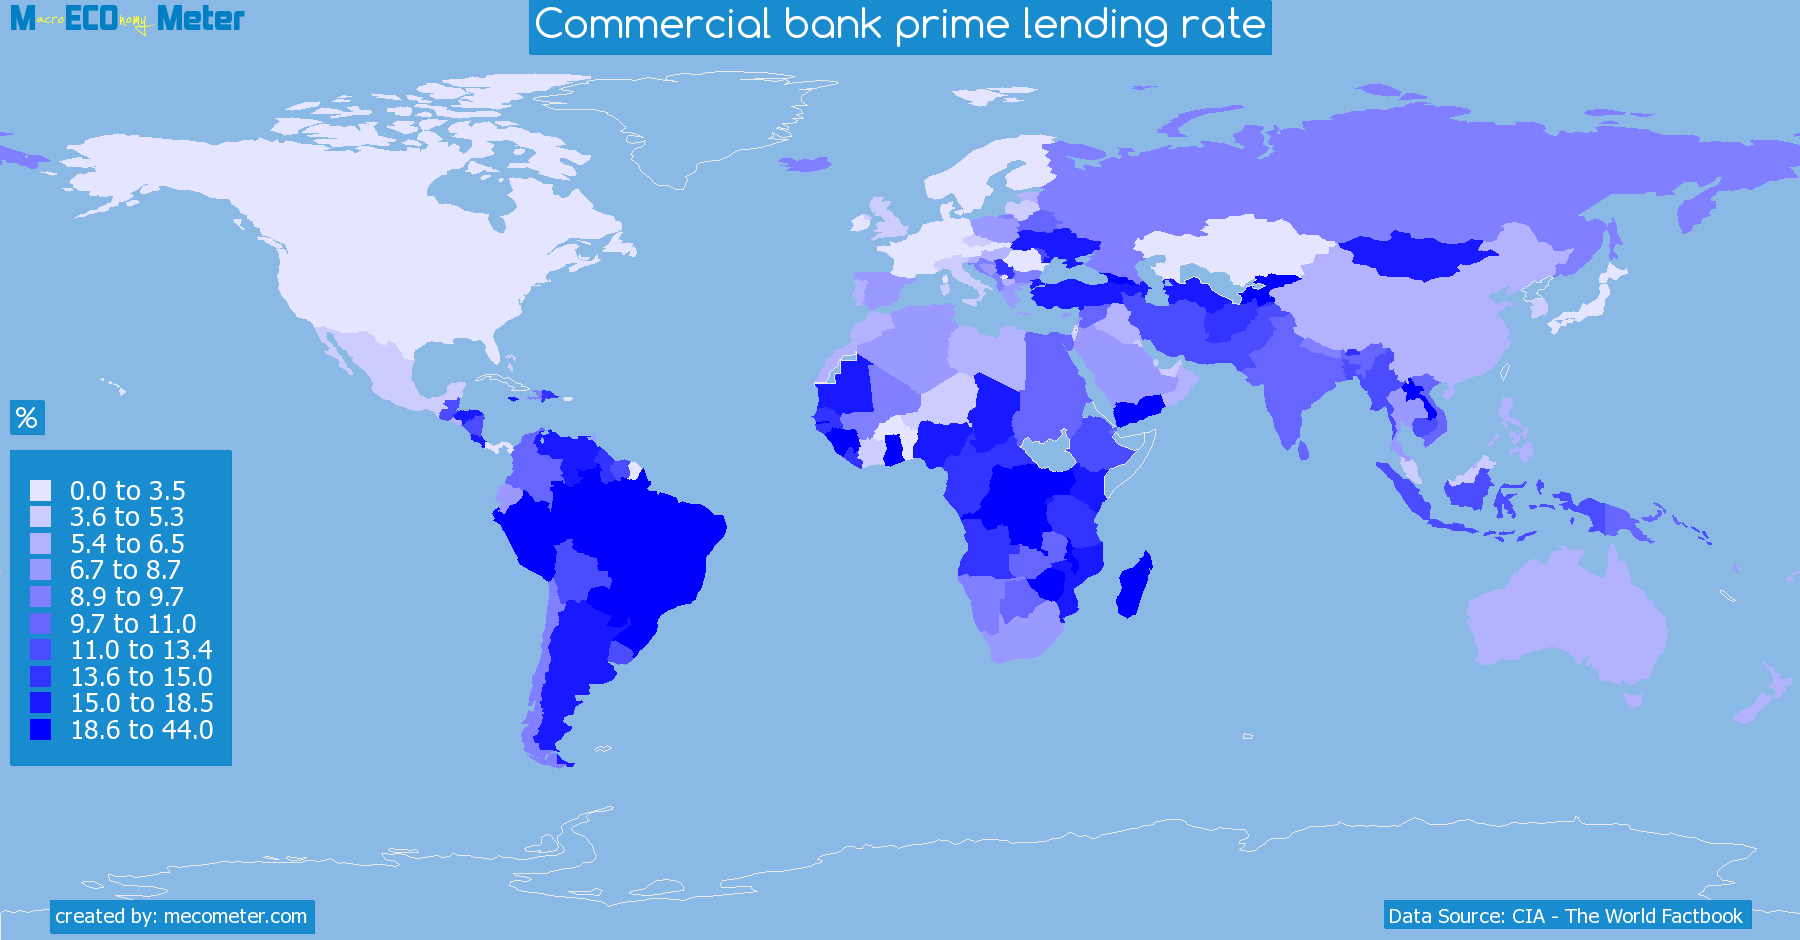 Worldmap of all countries colored to reflect the values of Commercial bank prime lending rate